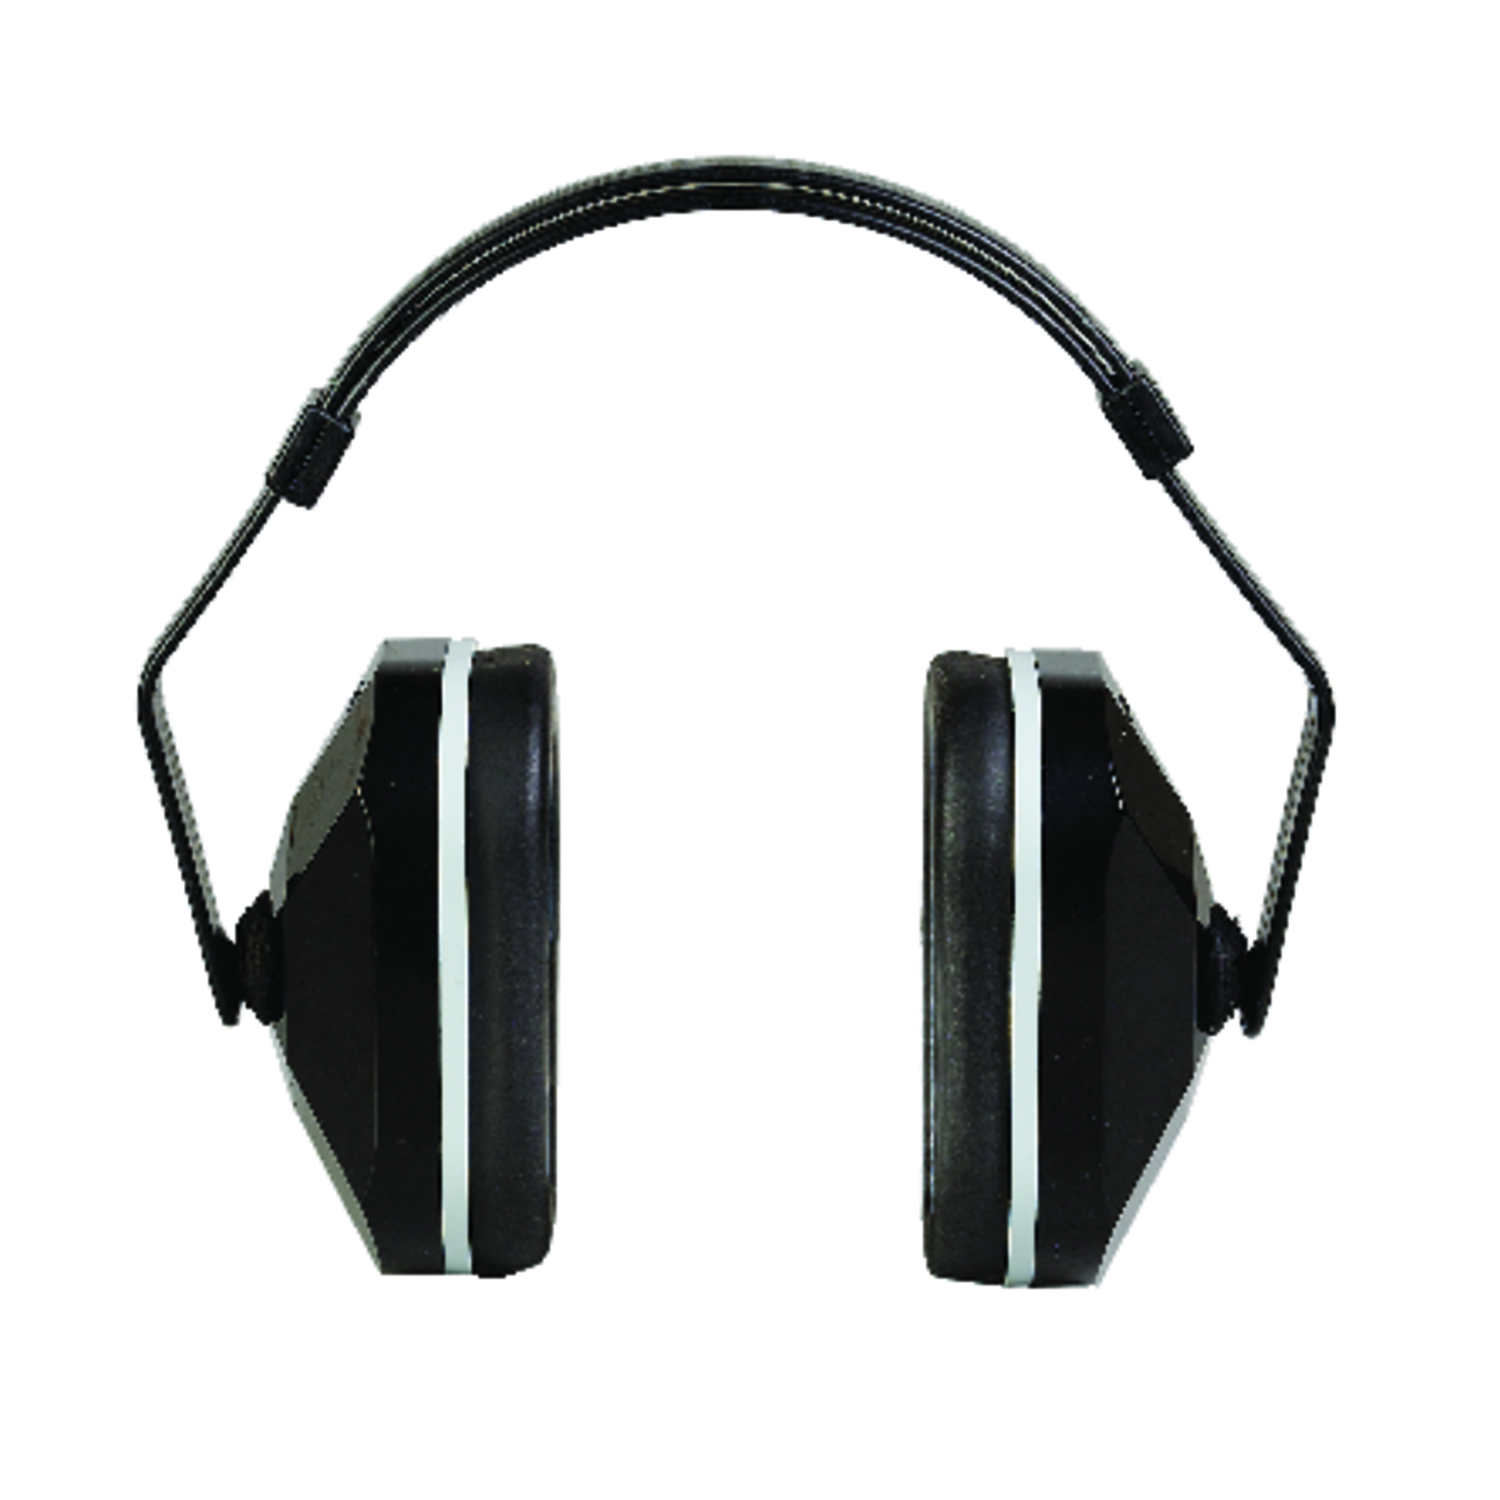 3M  20 dB Reusable  Earmuffs  Black  Plastic  1 pair